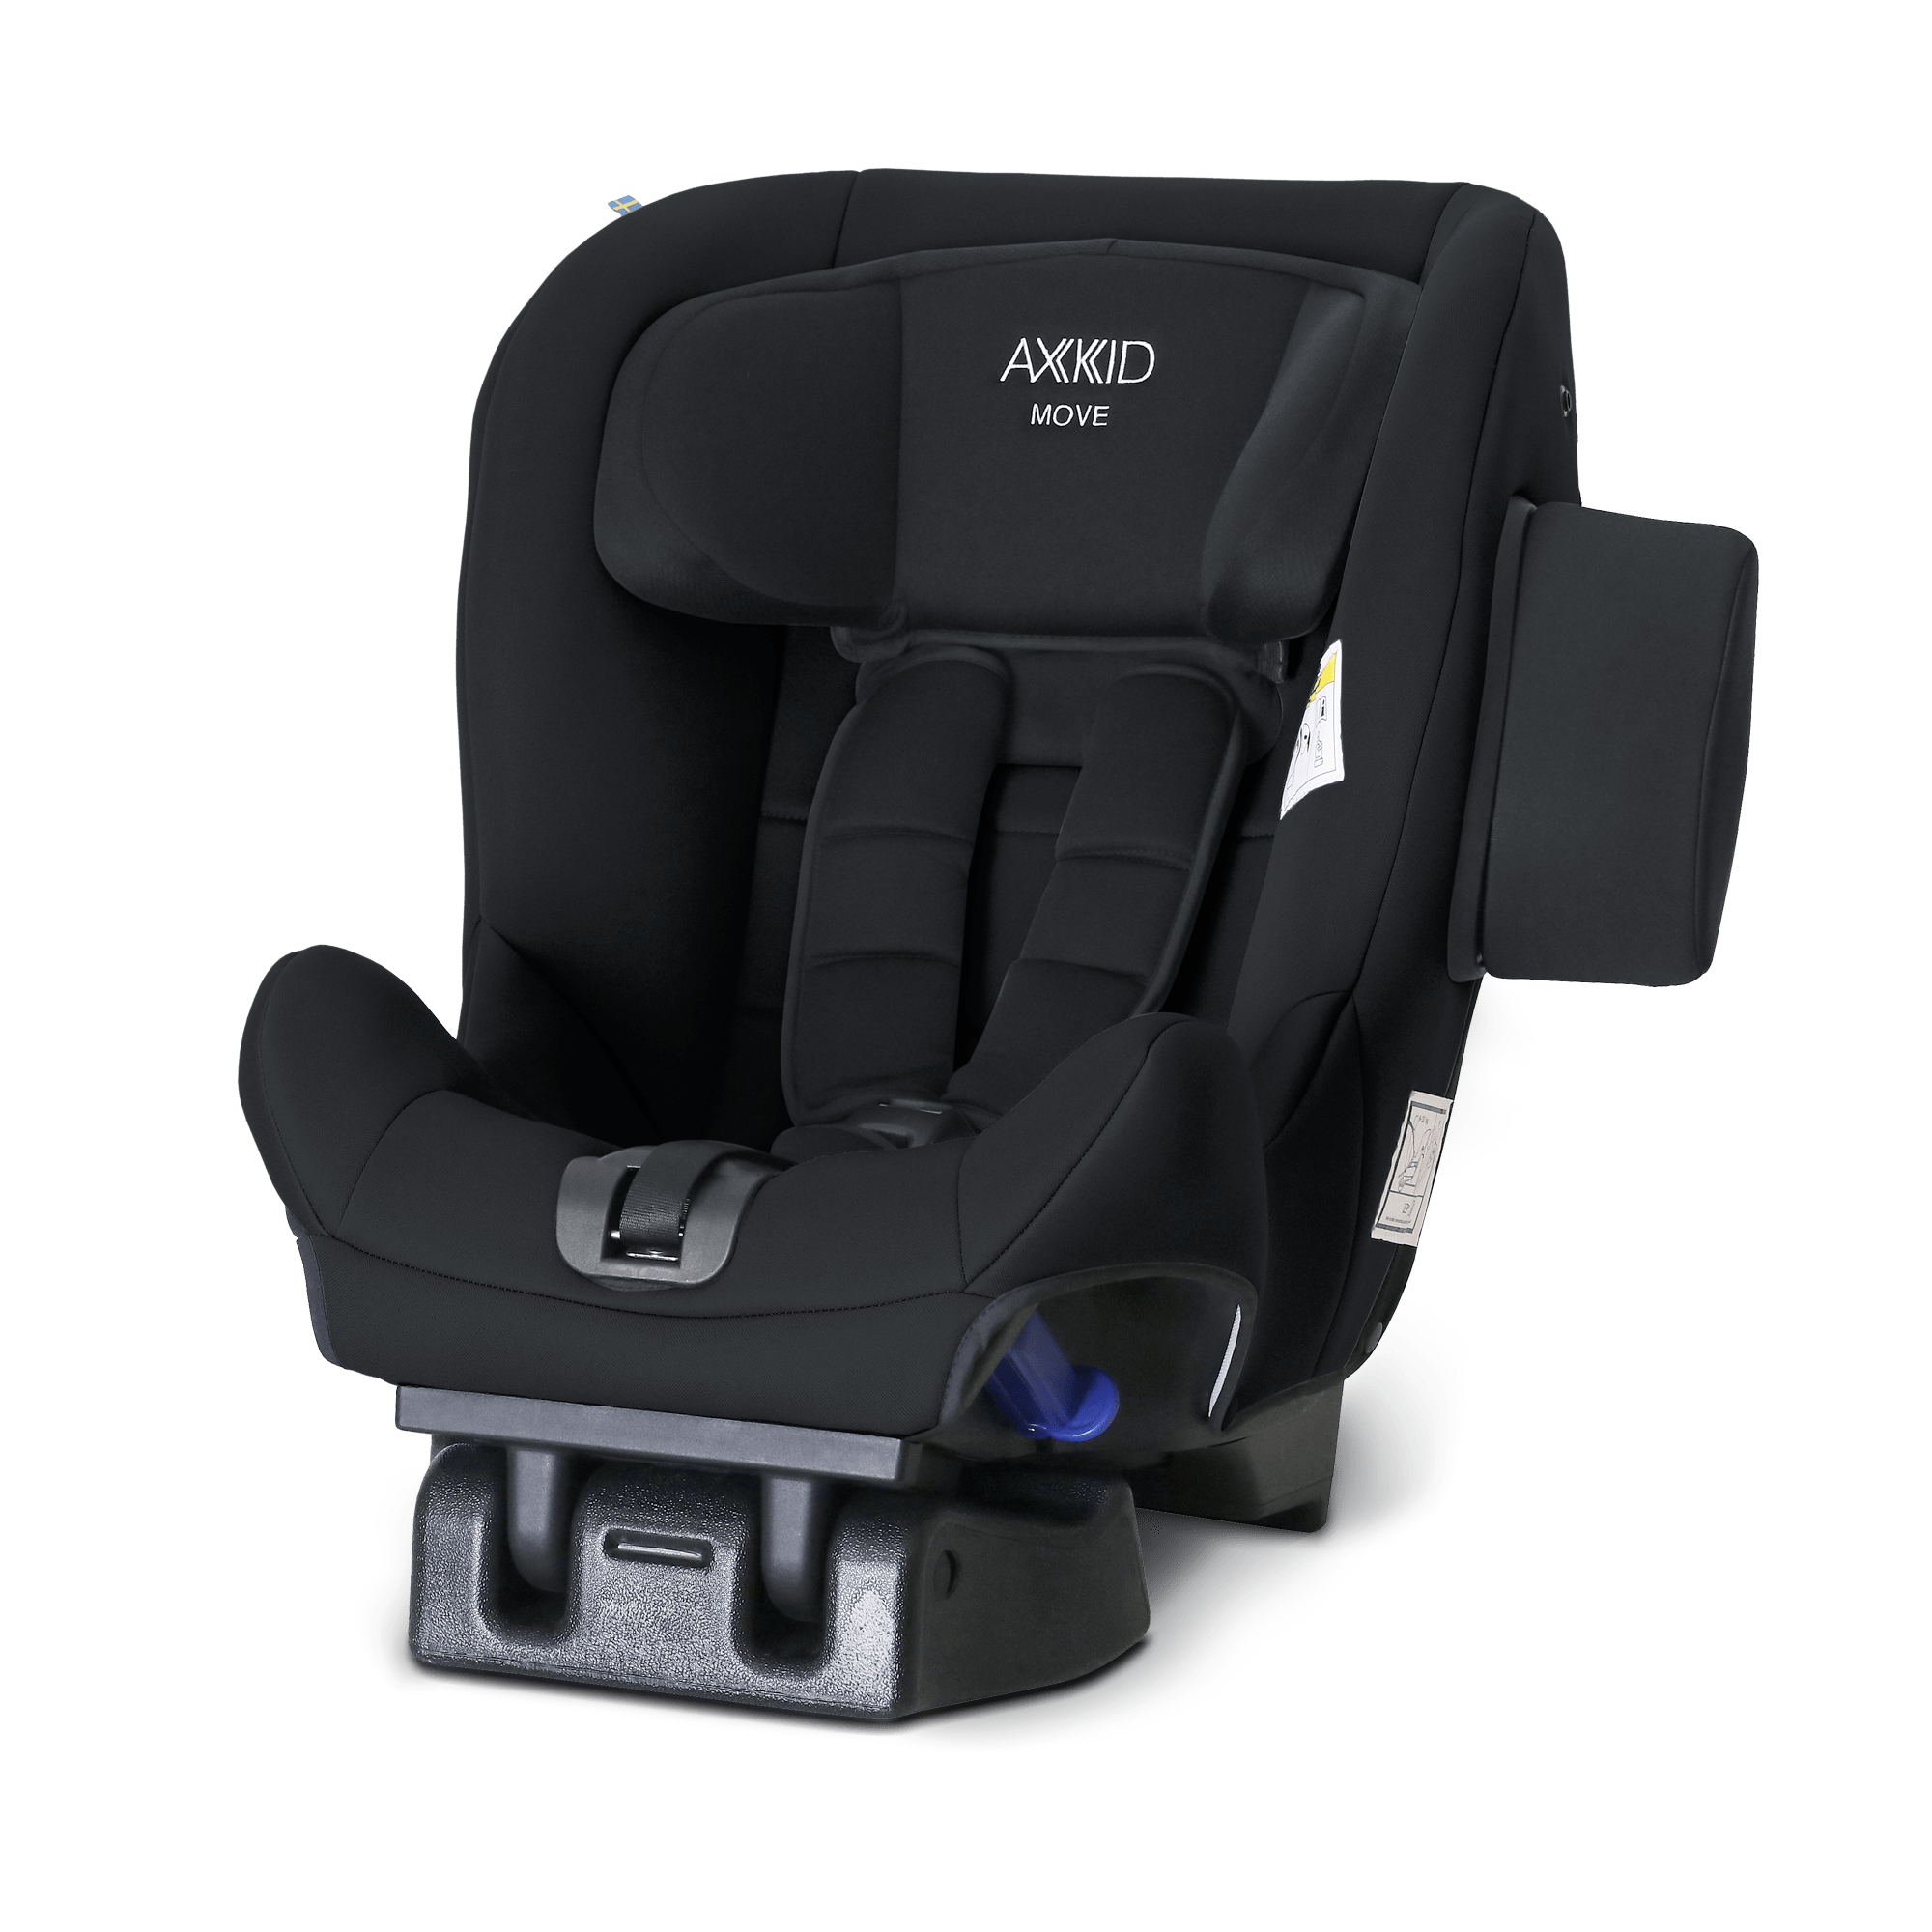 Rearfacing Car Seat - Axkid Move